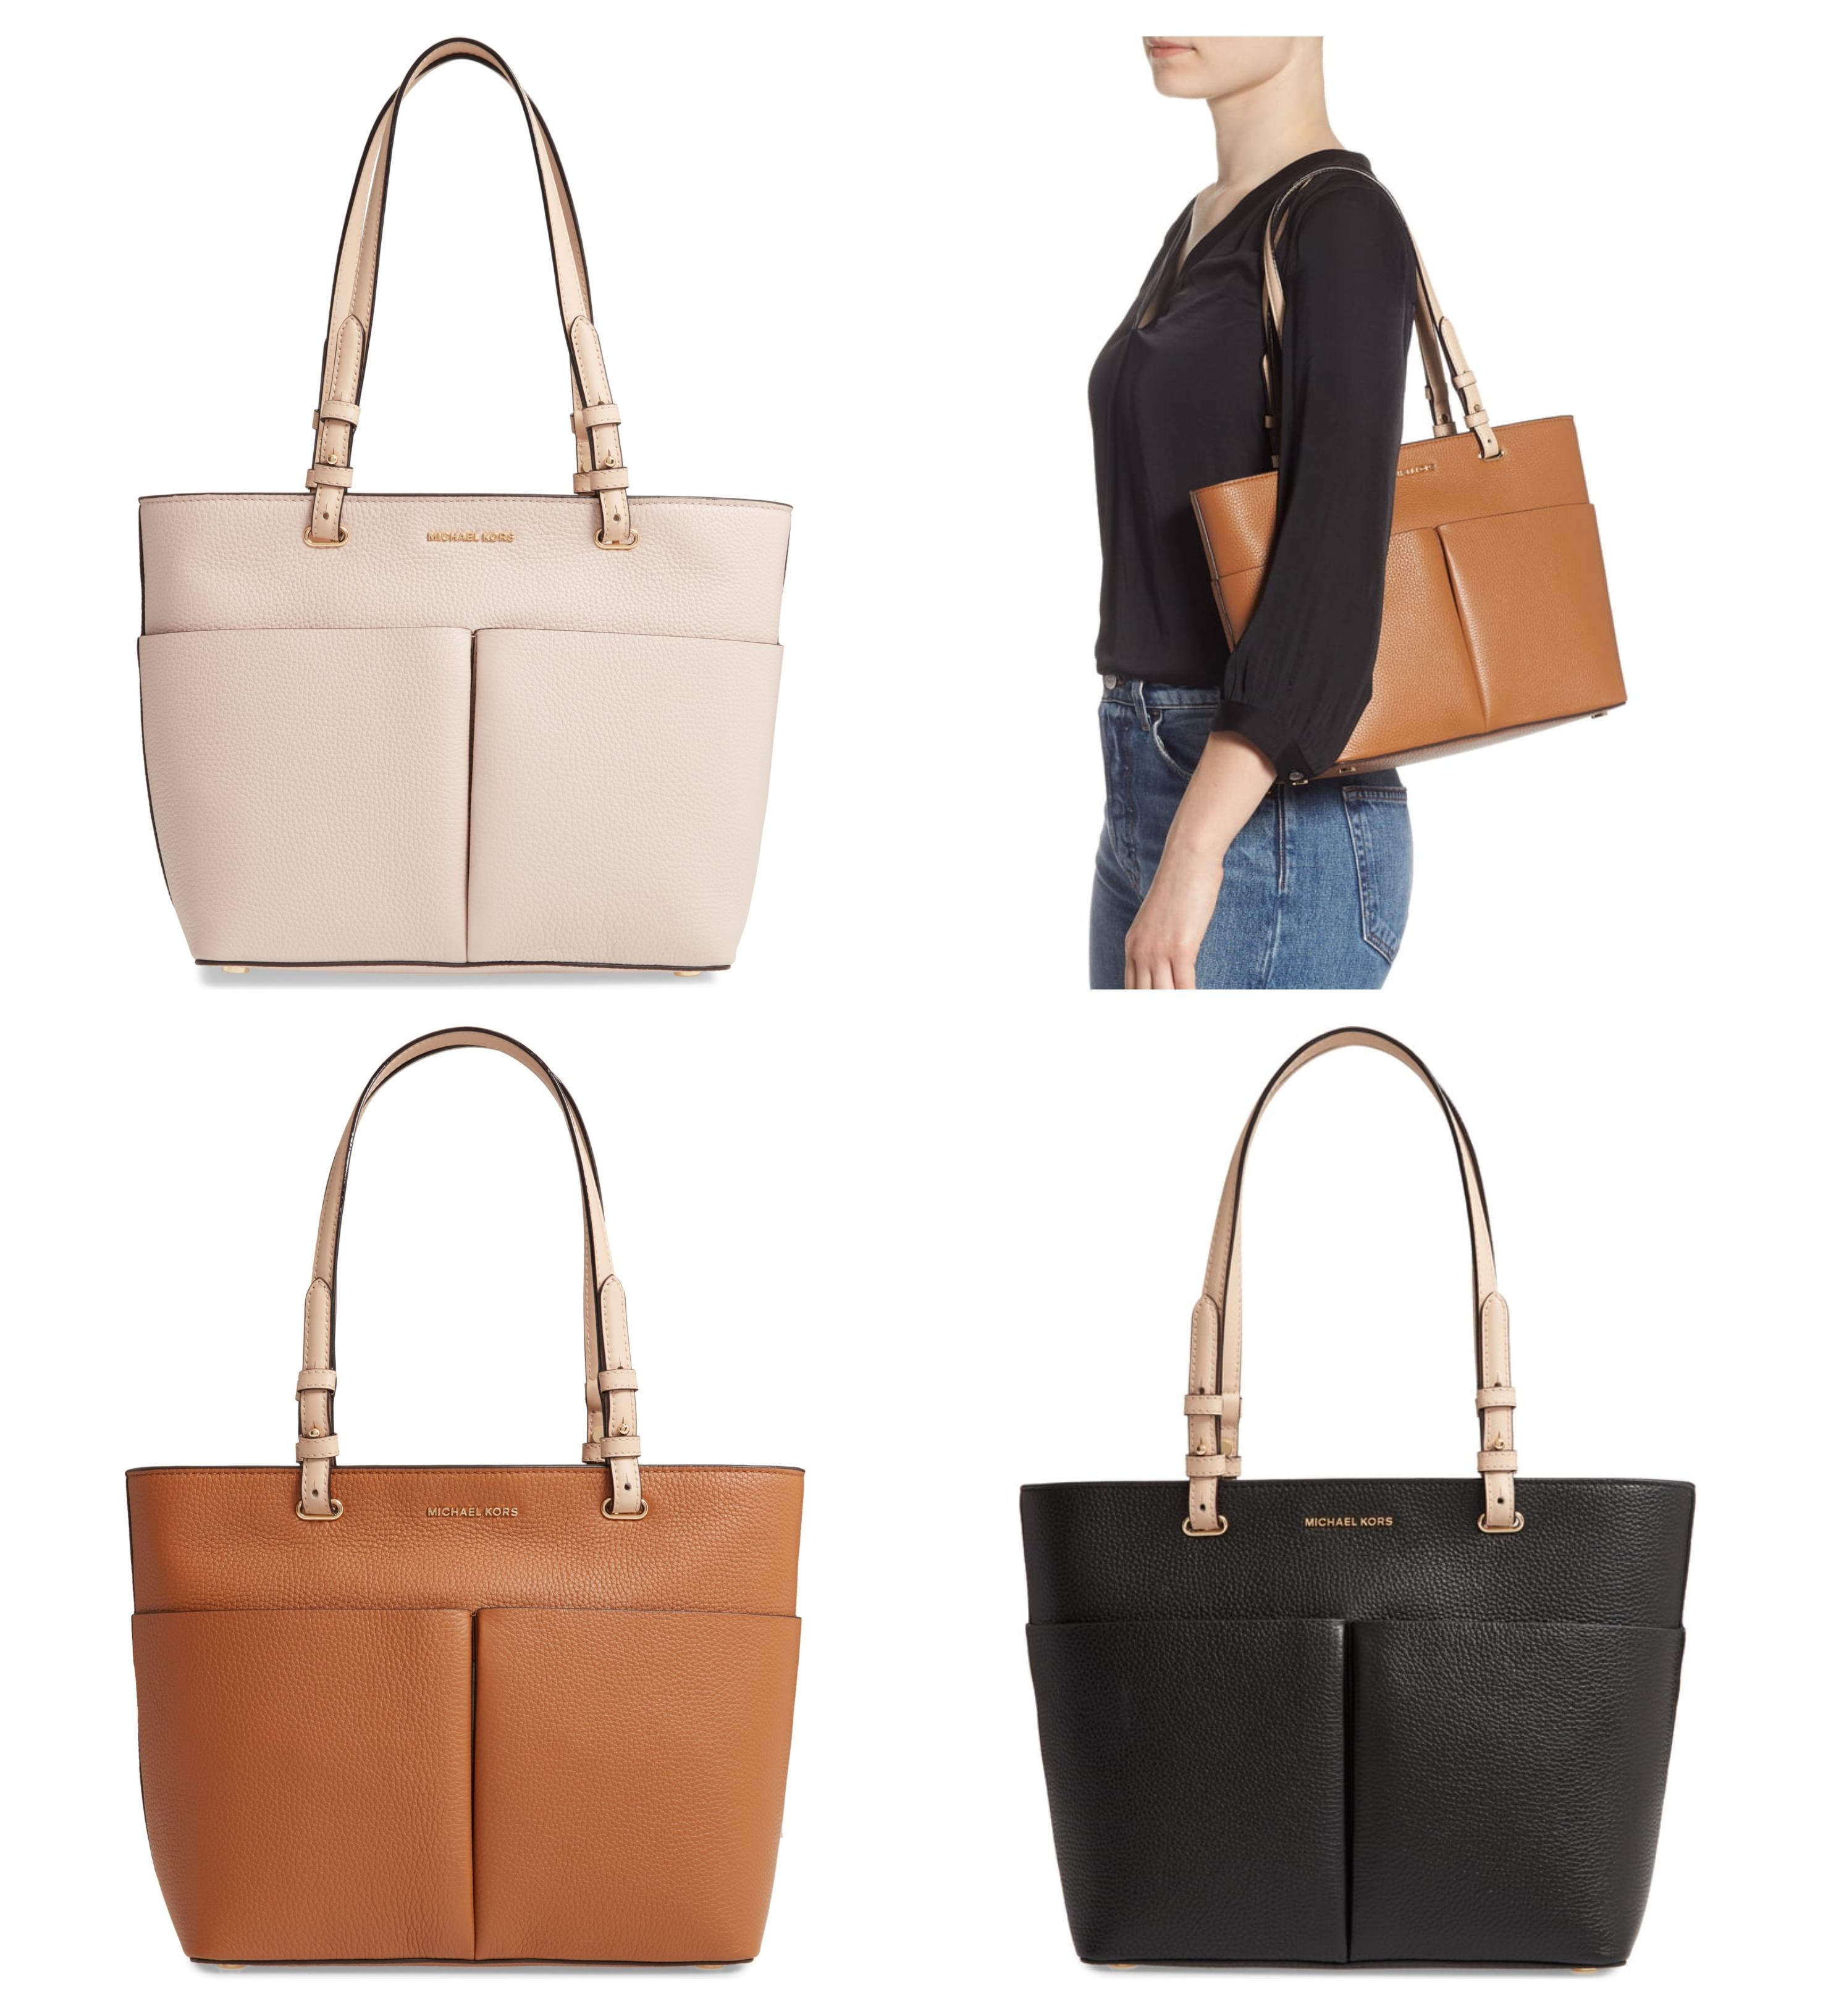 f909f78c03ee Nordstrom  Michael Kors Tote – only  149 Shipped + MORE! – Wear It ...